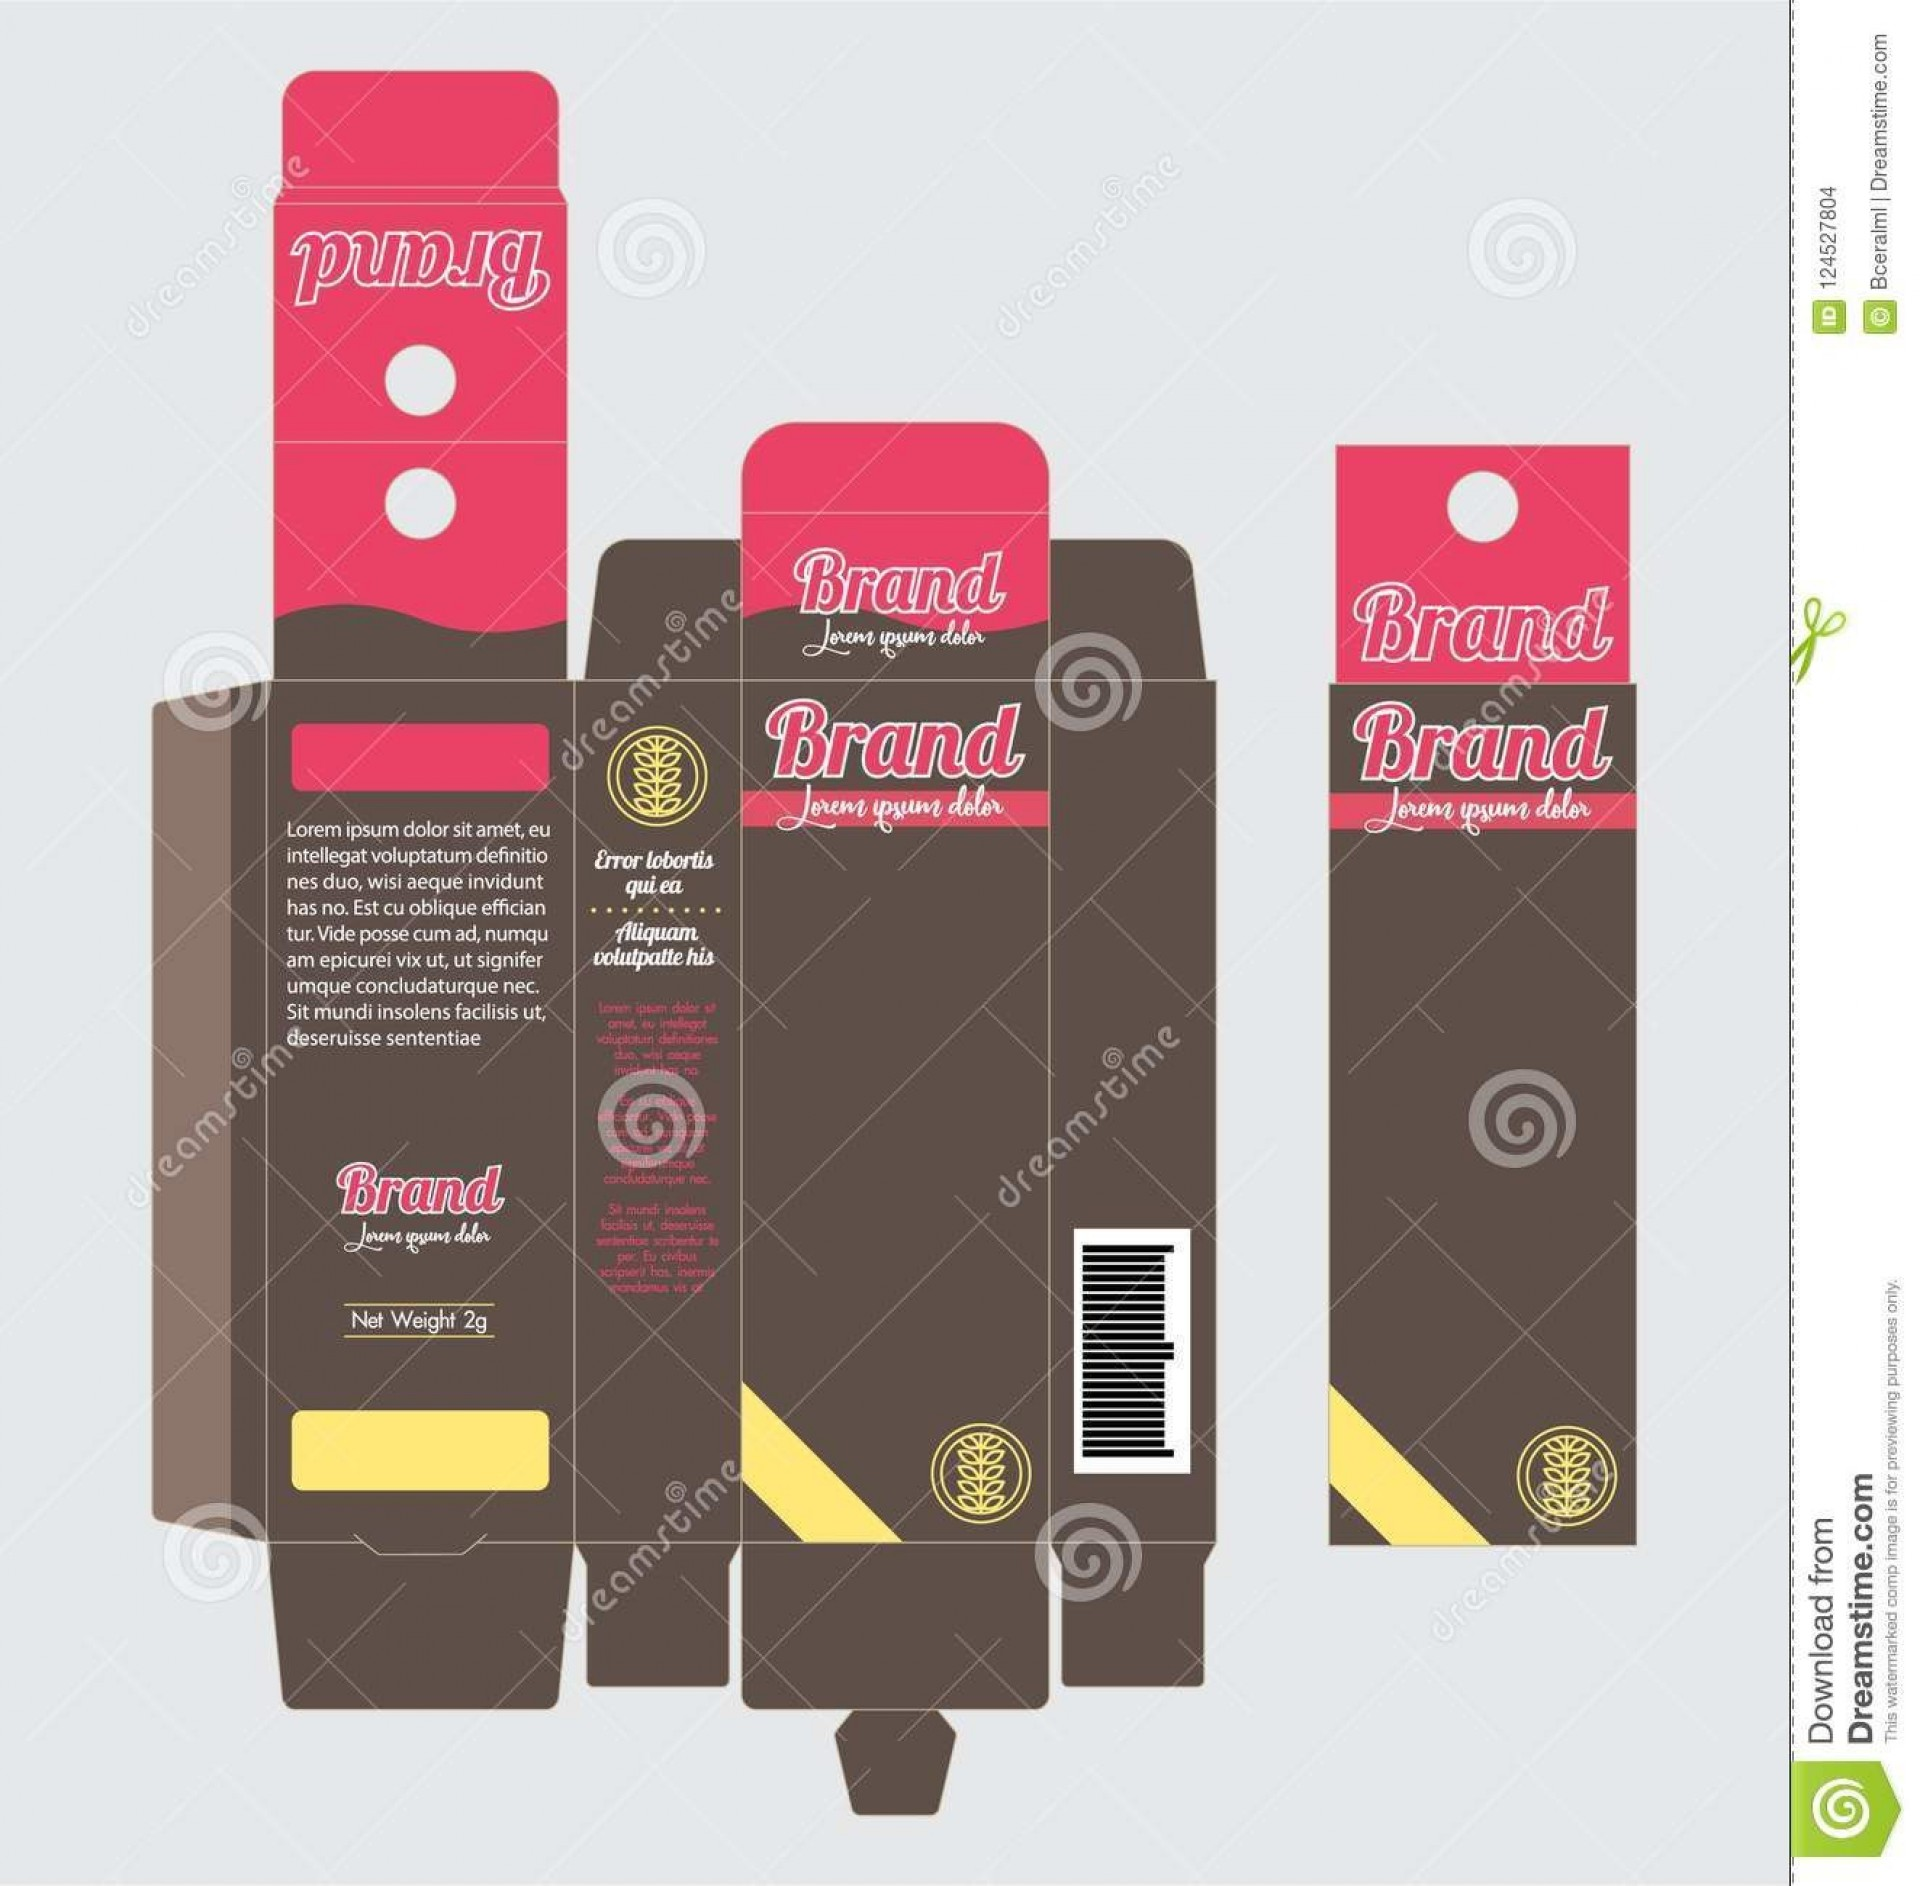 006 Surprising Product Packaging Design Template  Templates Free Download Sample1920